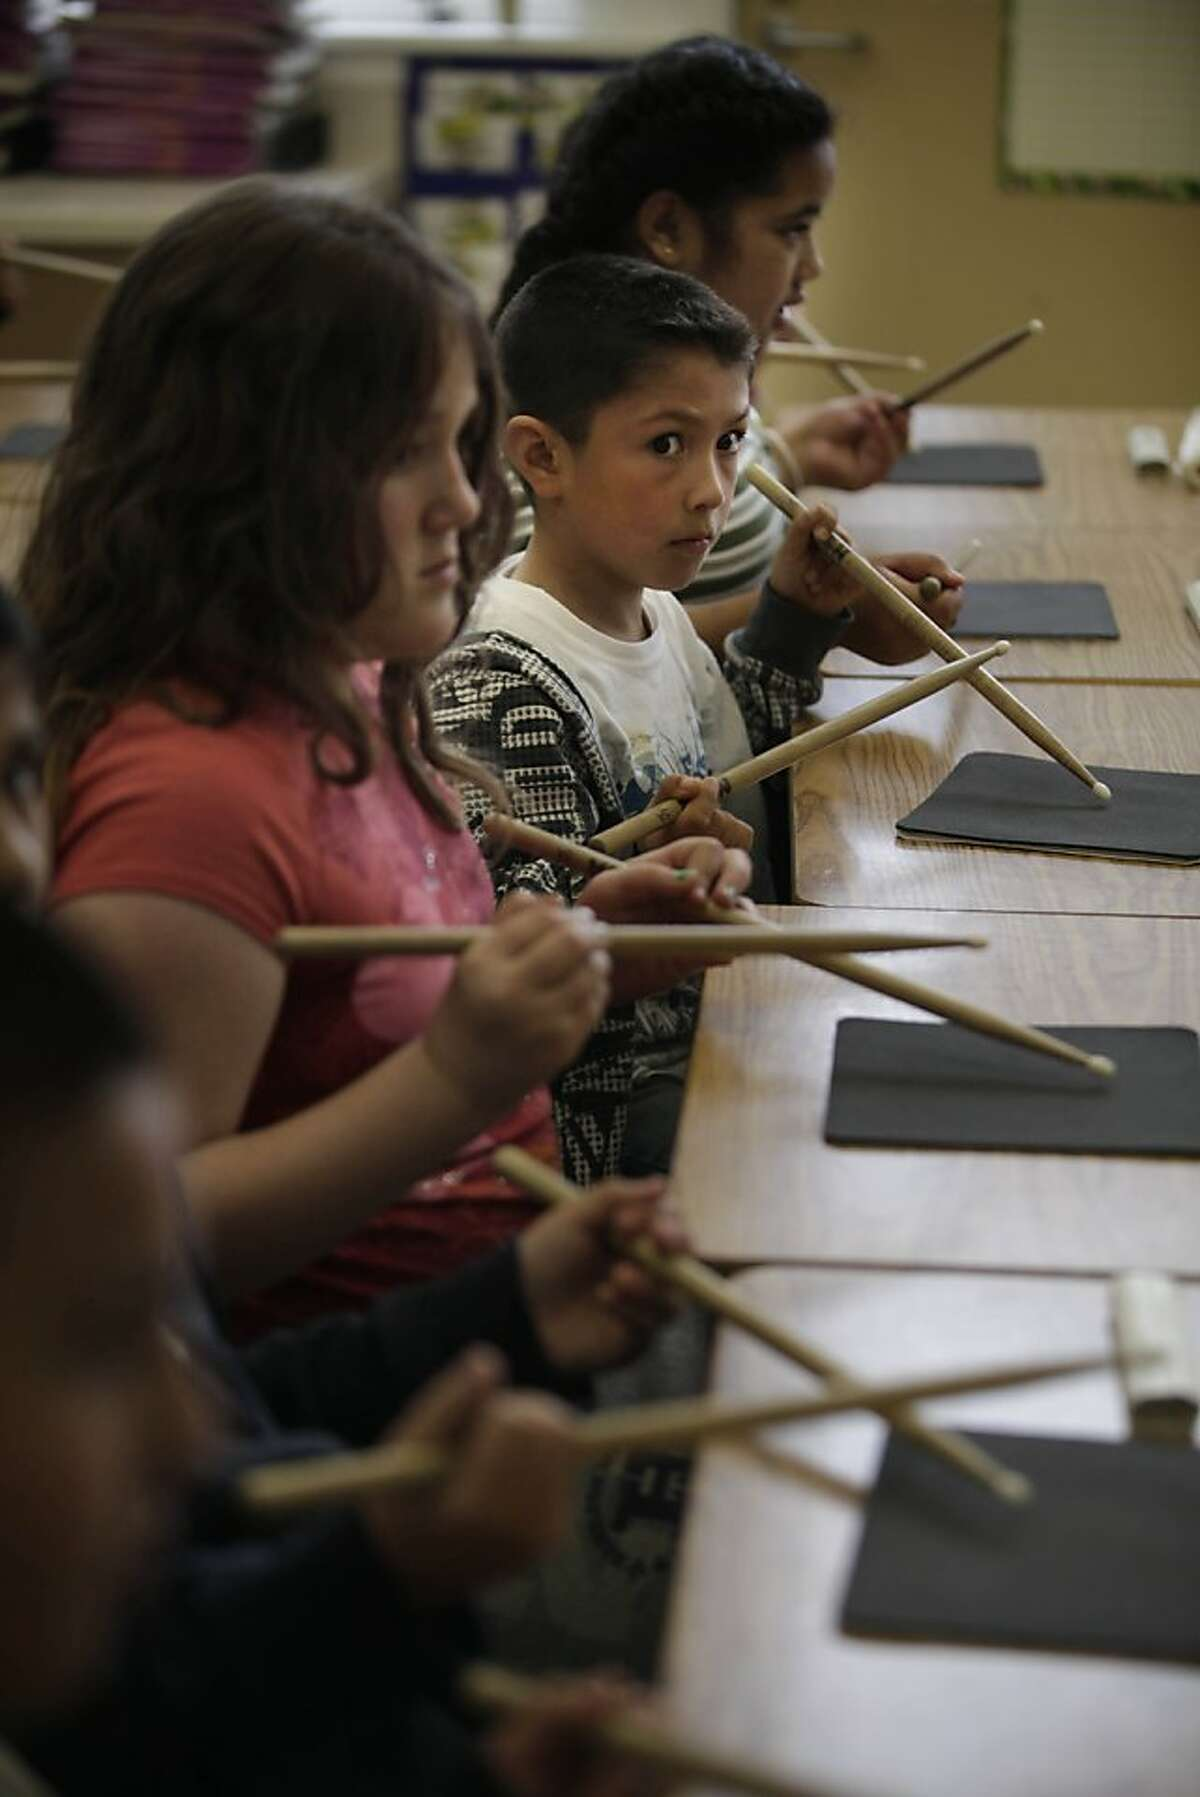 Allen Elementary school third grader Jaime Ortega (second from top) uses his drum sticks to drum notes as he keeps his eye on Endre Balogh (not shown), Toones Academic Music teacher, on Tuesday, March 27, 2012 in San Bruno, Calif.